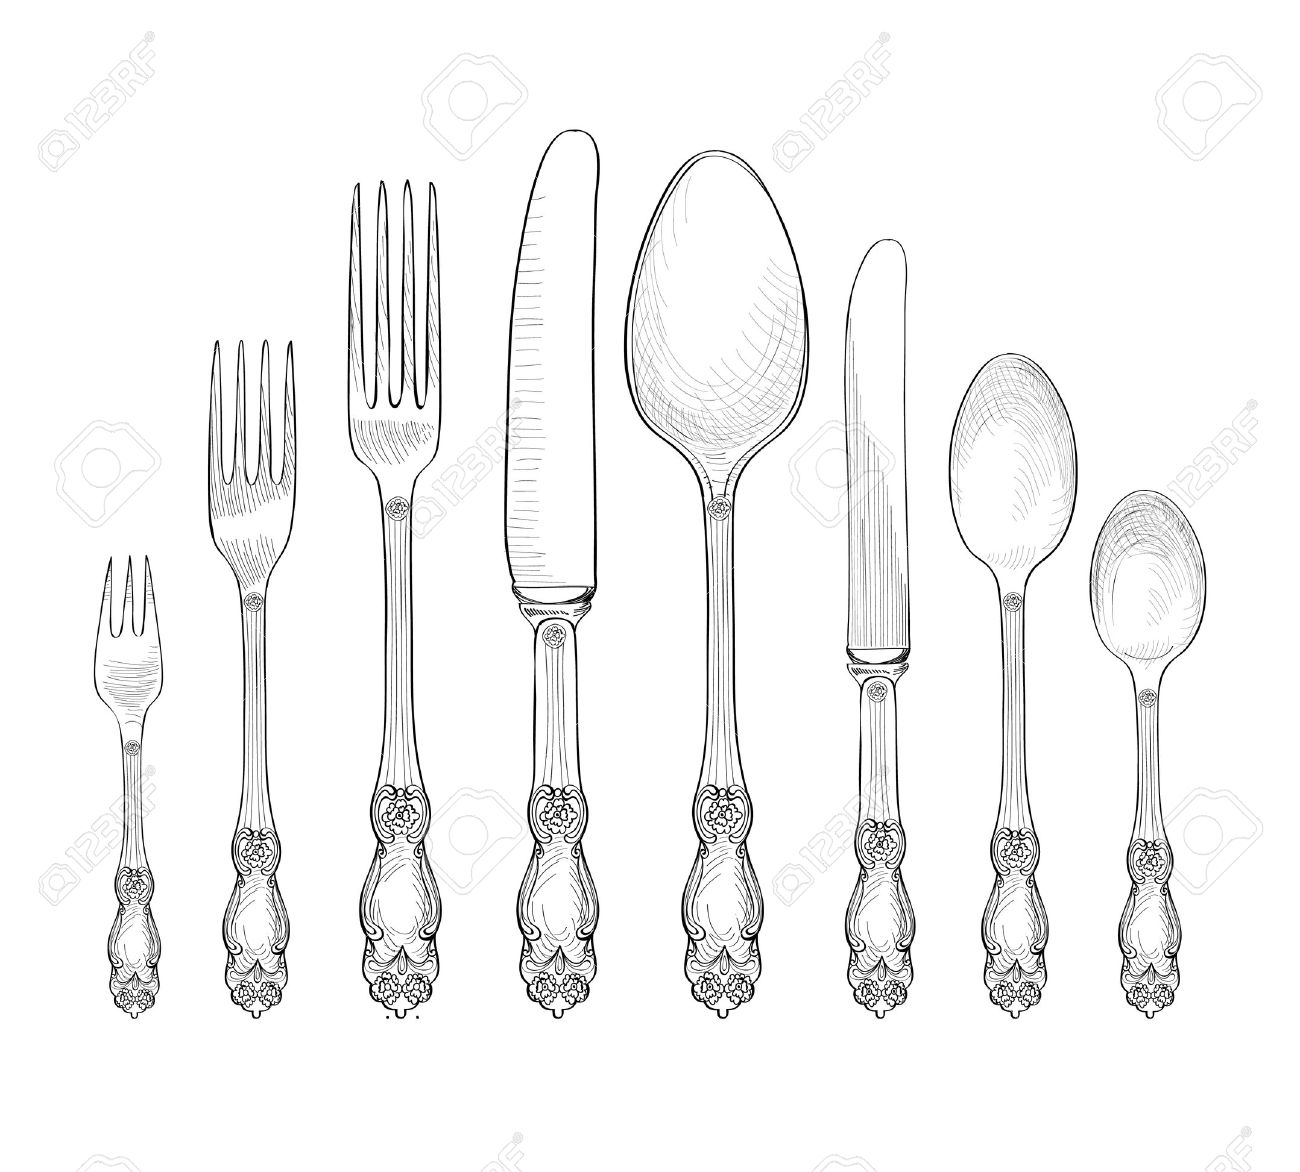 Table setting set. Fork Knife Spoon sketch set. Cutlery hand drawing collection  sc 1 st  123RF.com & Table Setting Set. Fork Knife Spoon Sketch Set. Cutlery Hand ...